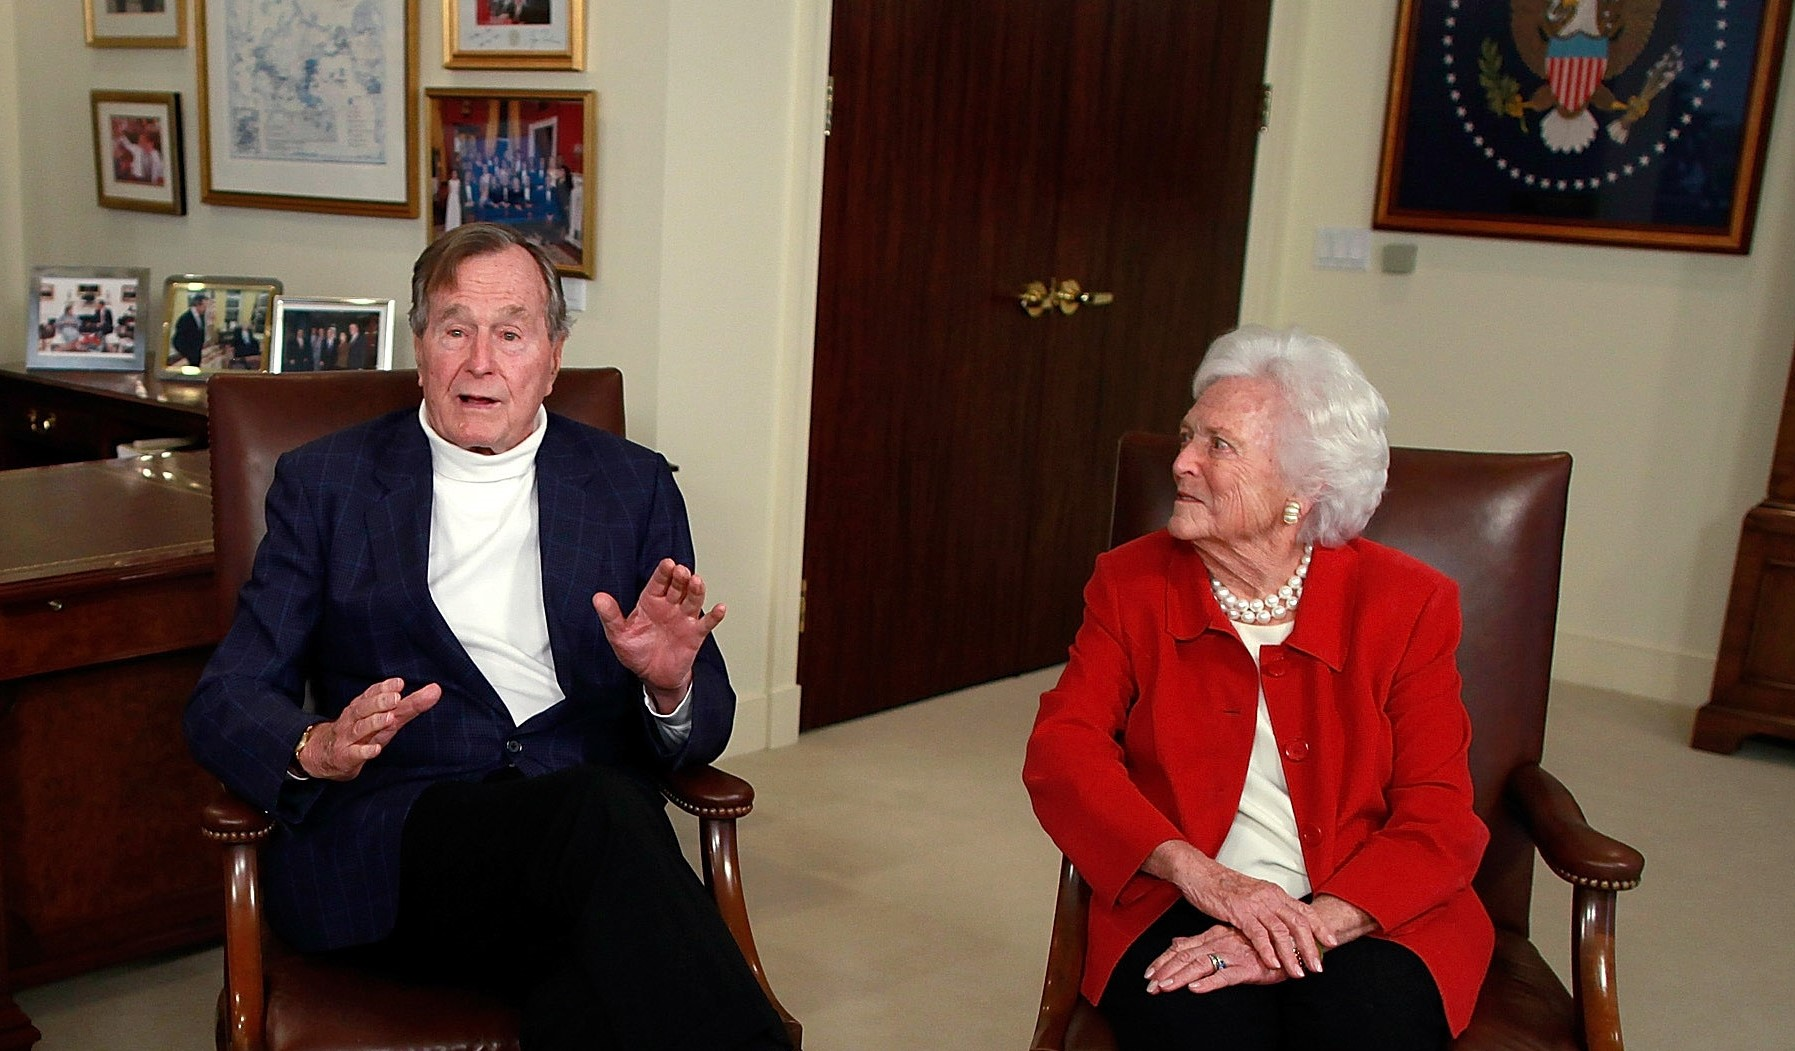 Former President George H.W. Bush and former First Lady Barbara Bush, pictured in 2012. (Getty Images)